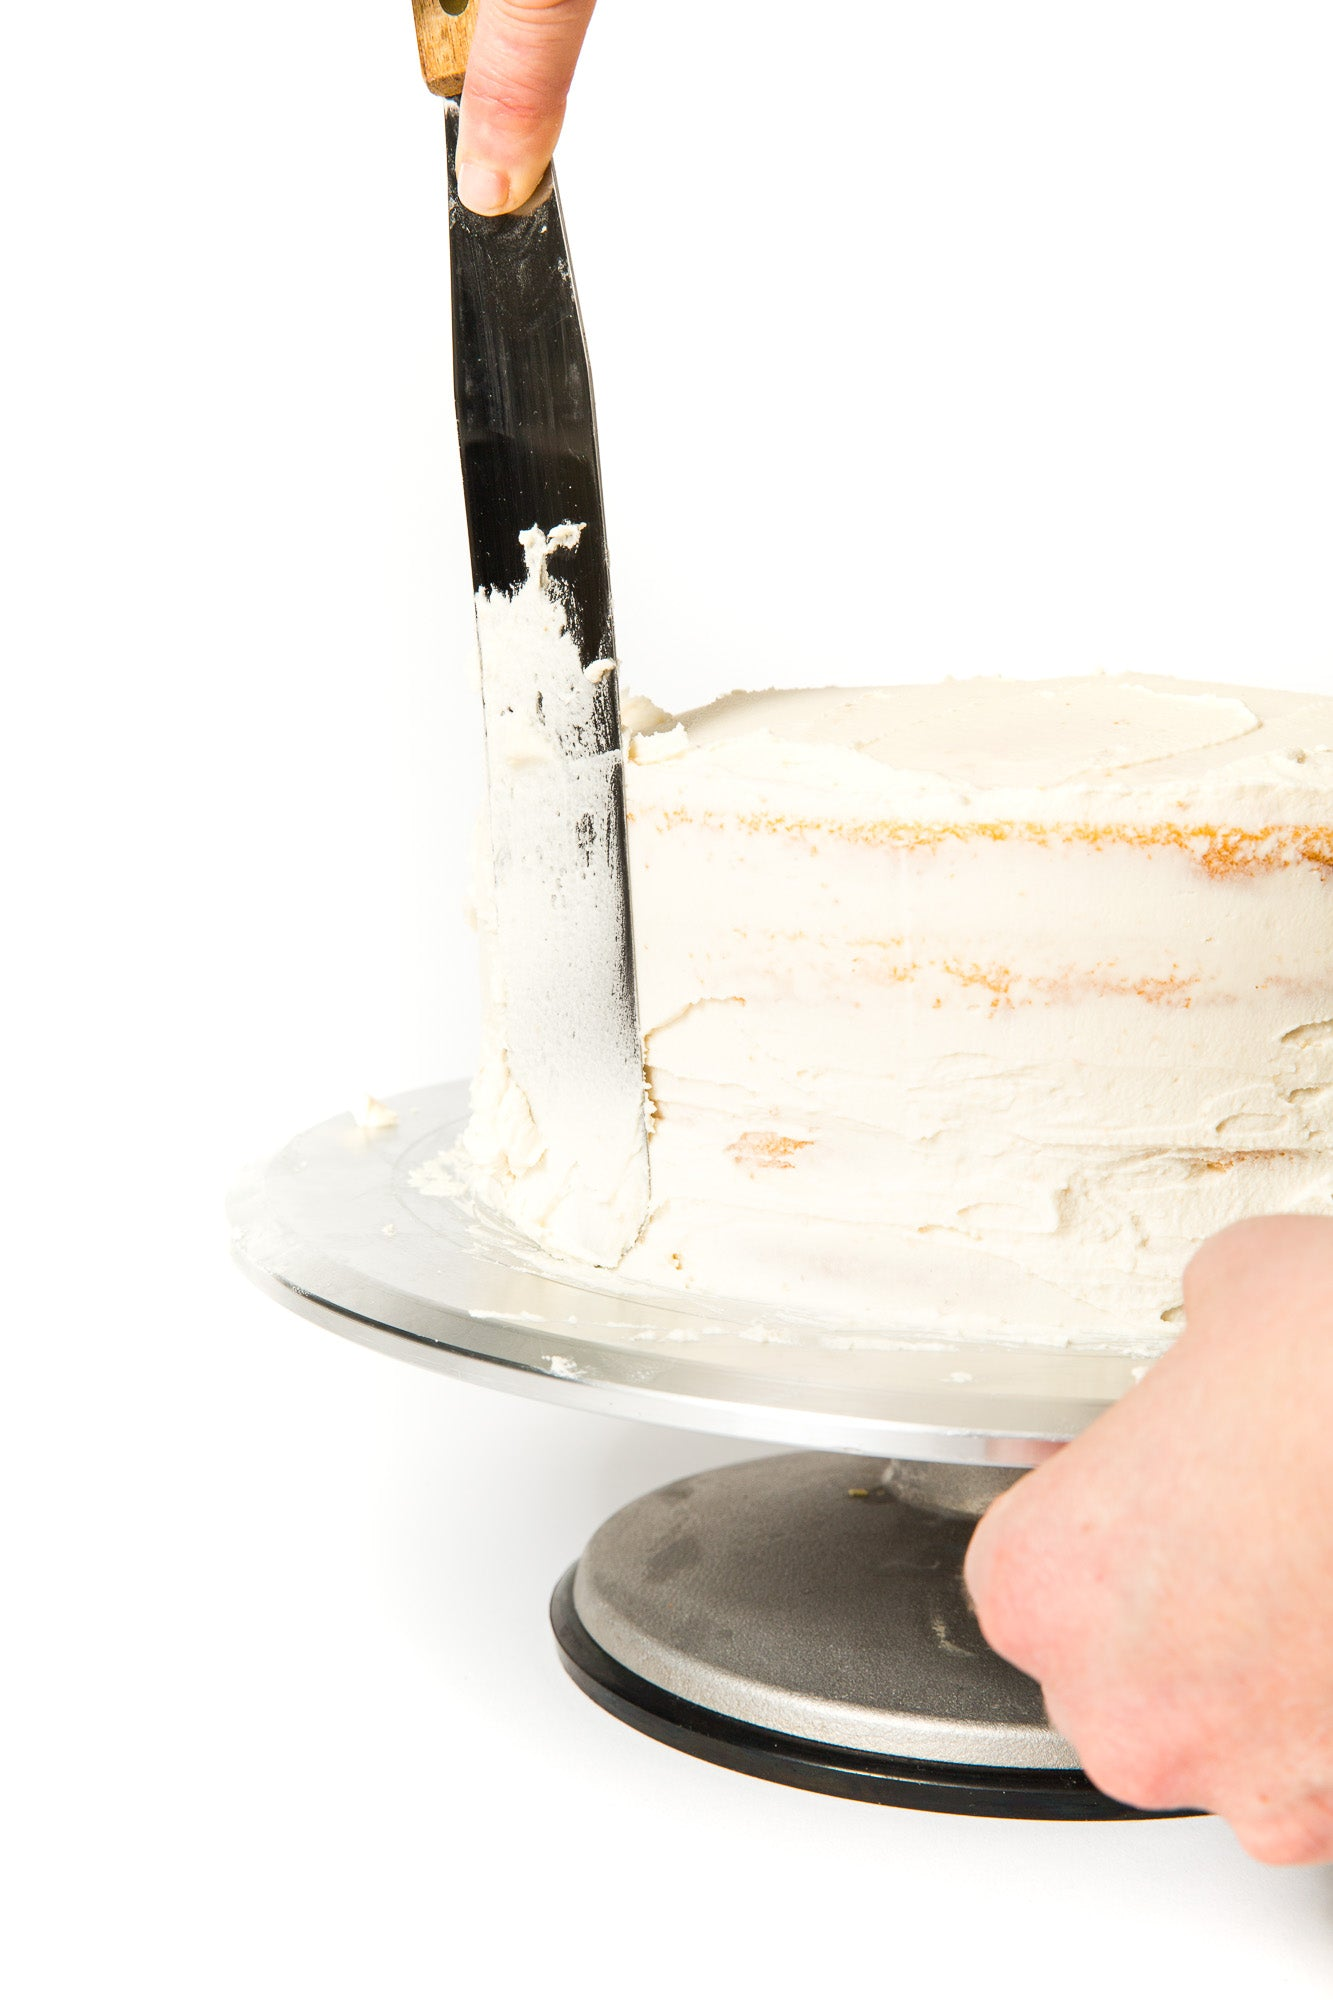 Image of part of Miss Jones Baking Co Floral Bloom Layer Cake being frosted on a cake stand